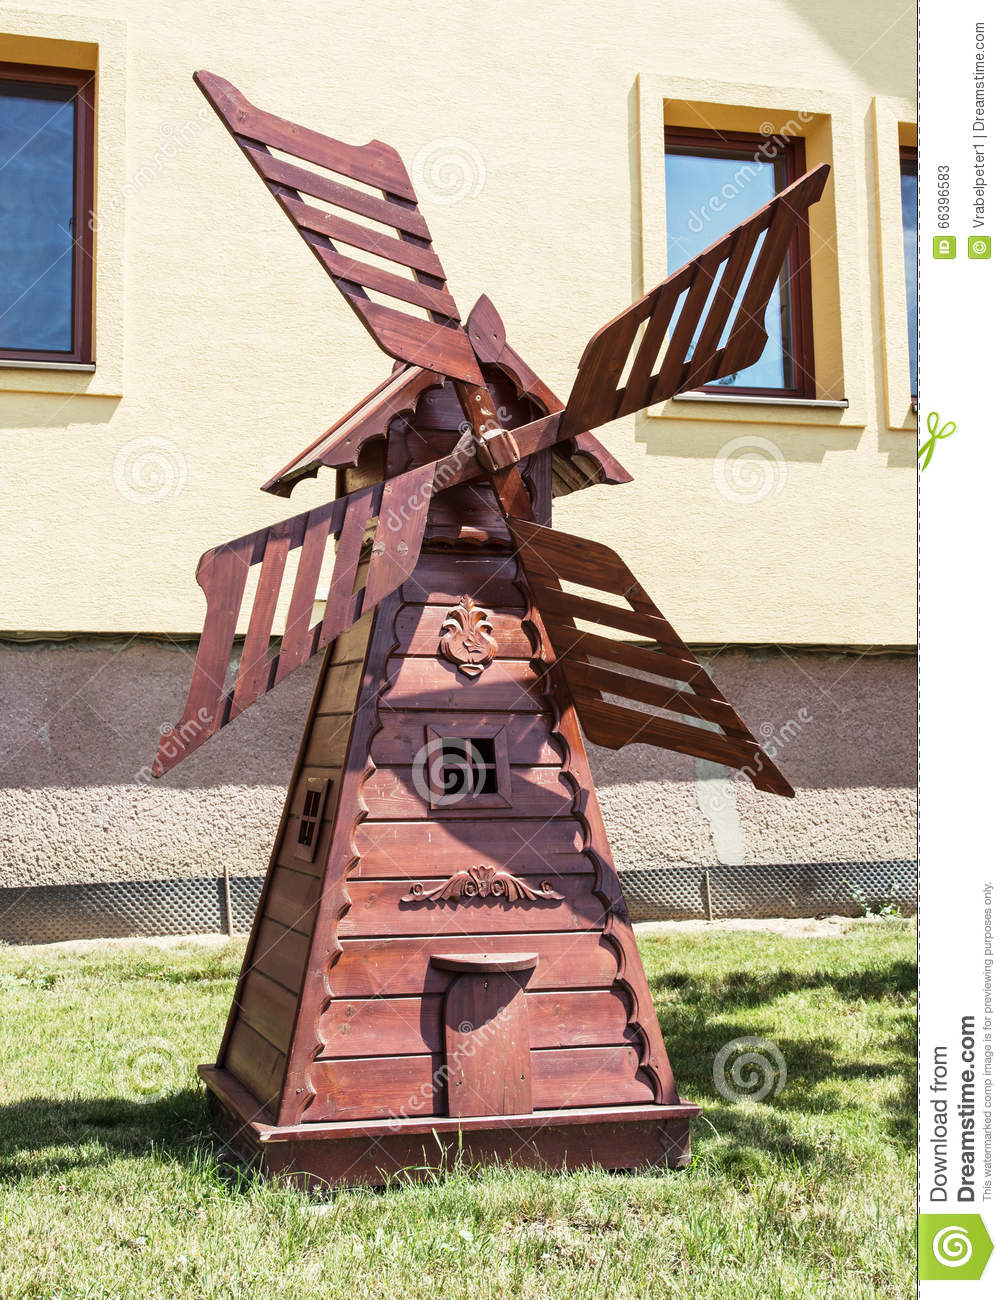 Moulin vent en bois d coratif dans le jardin d coupant l 39 art photo sto - Moulin a vent decoratif ...